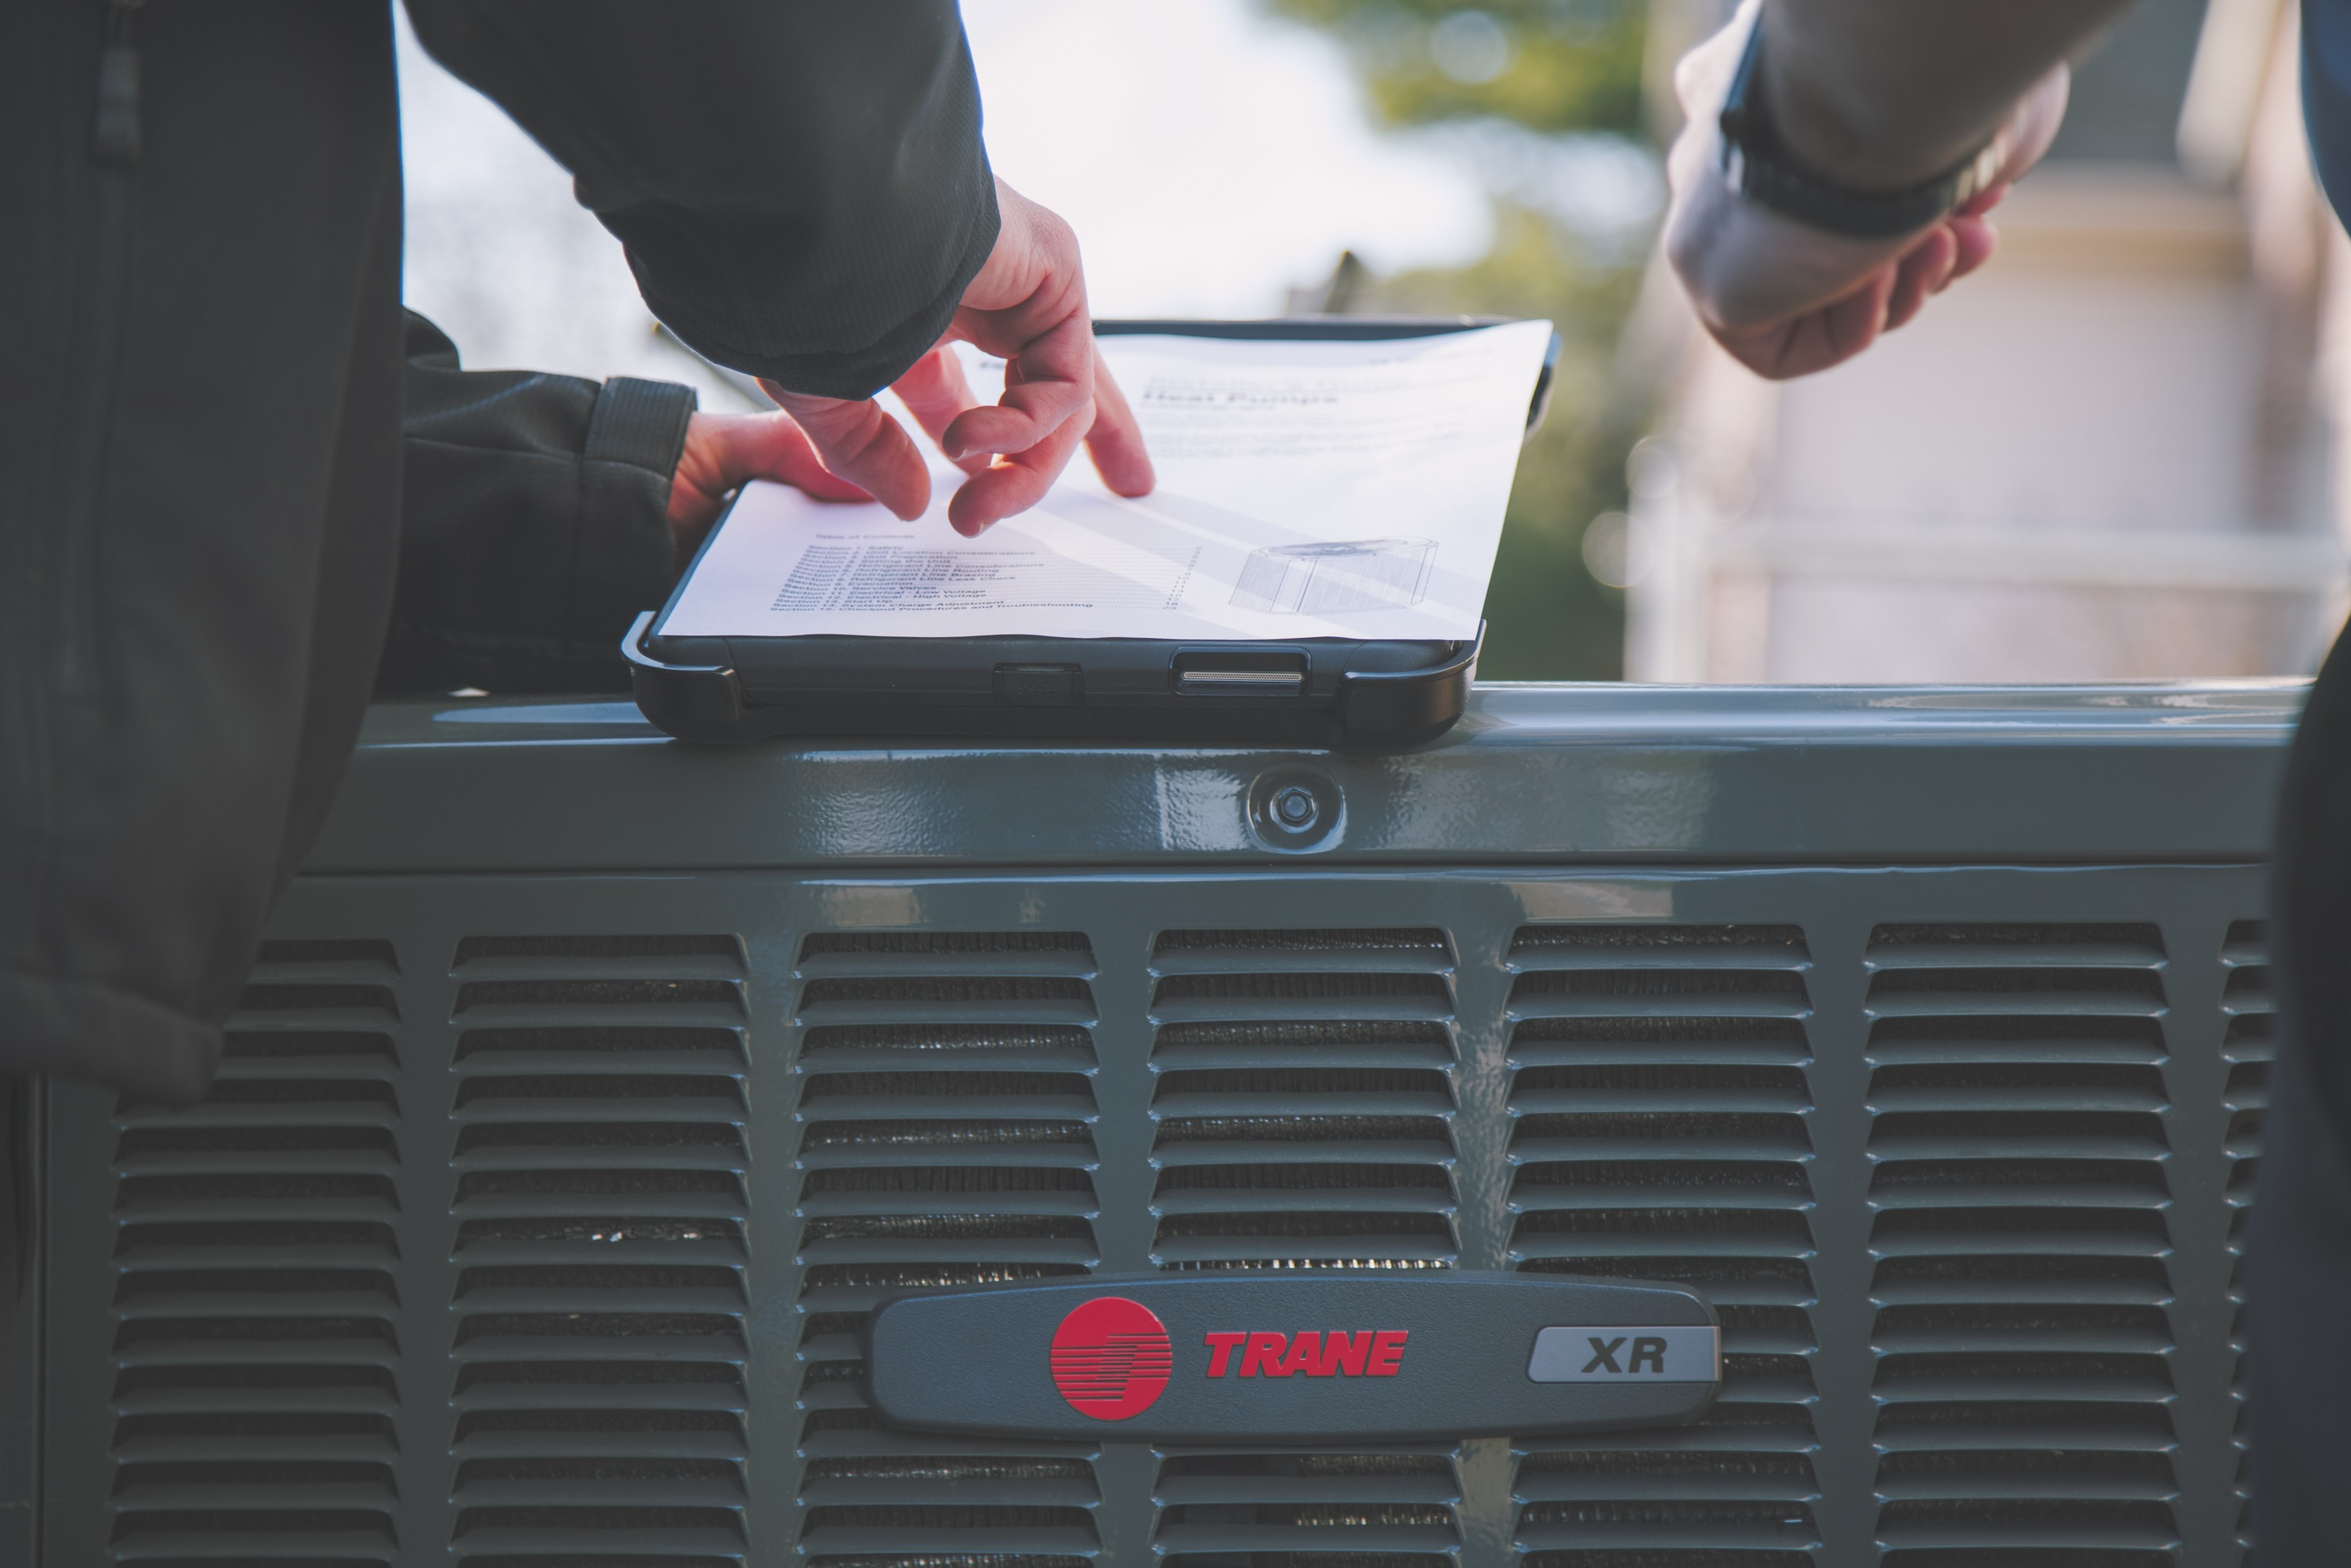 heating and air conditioning companies near me - RSP HVAC